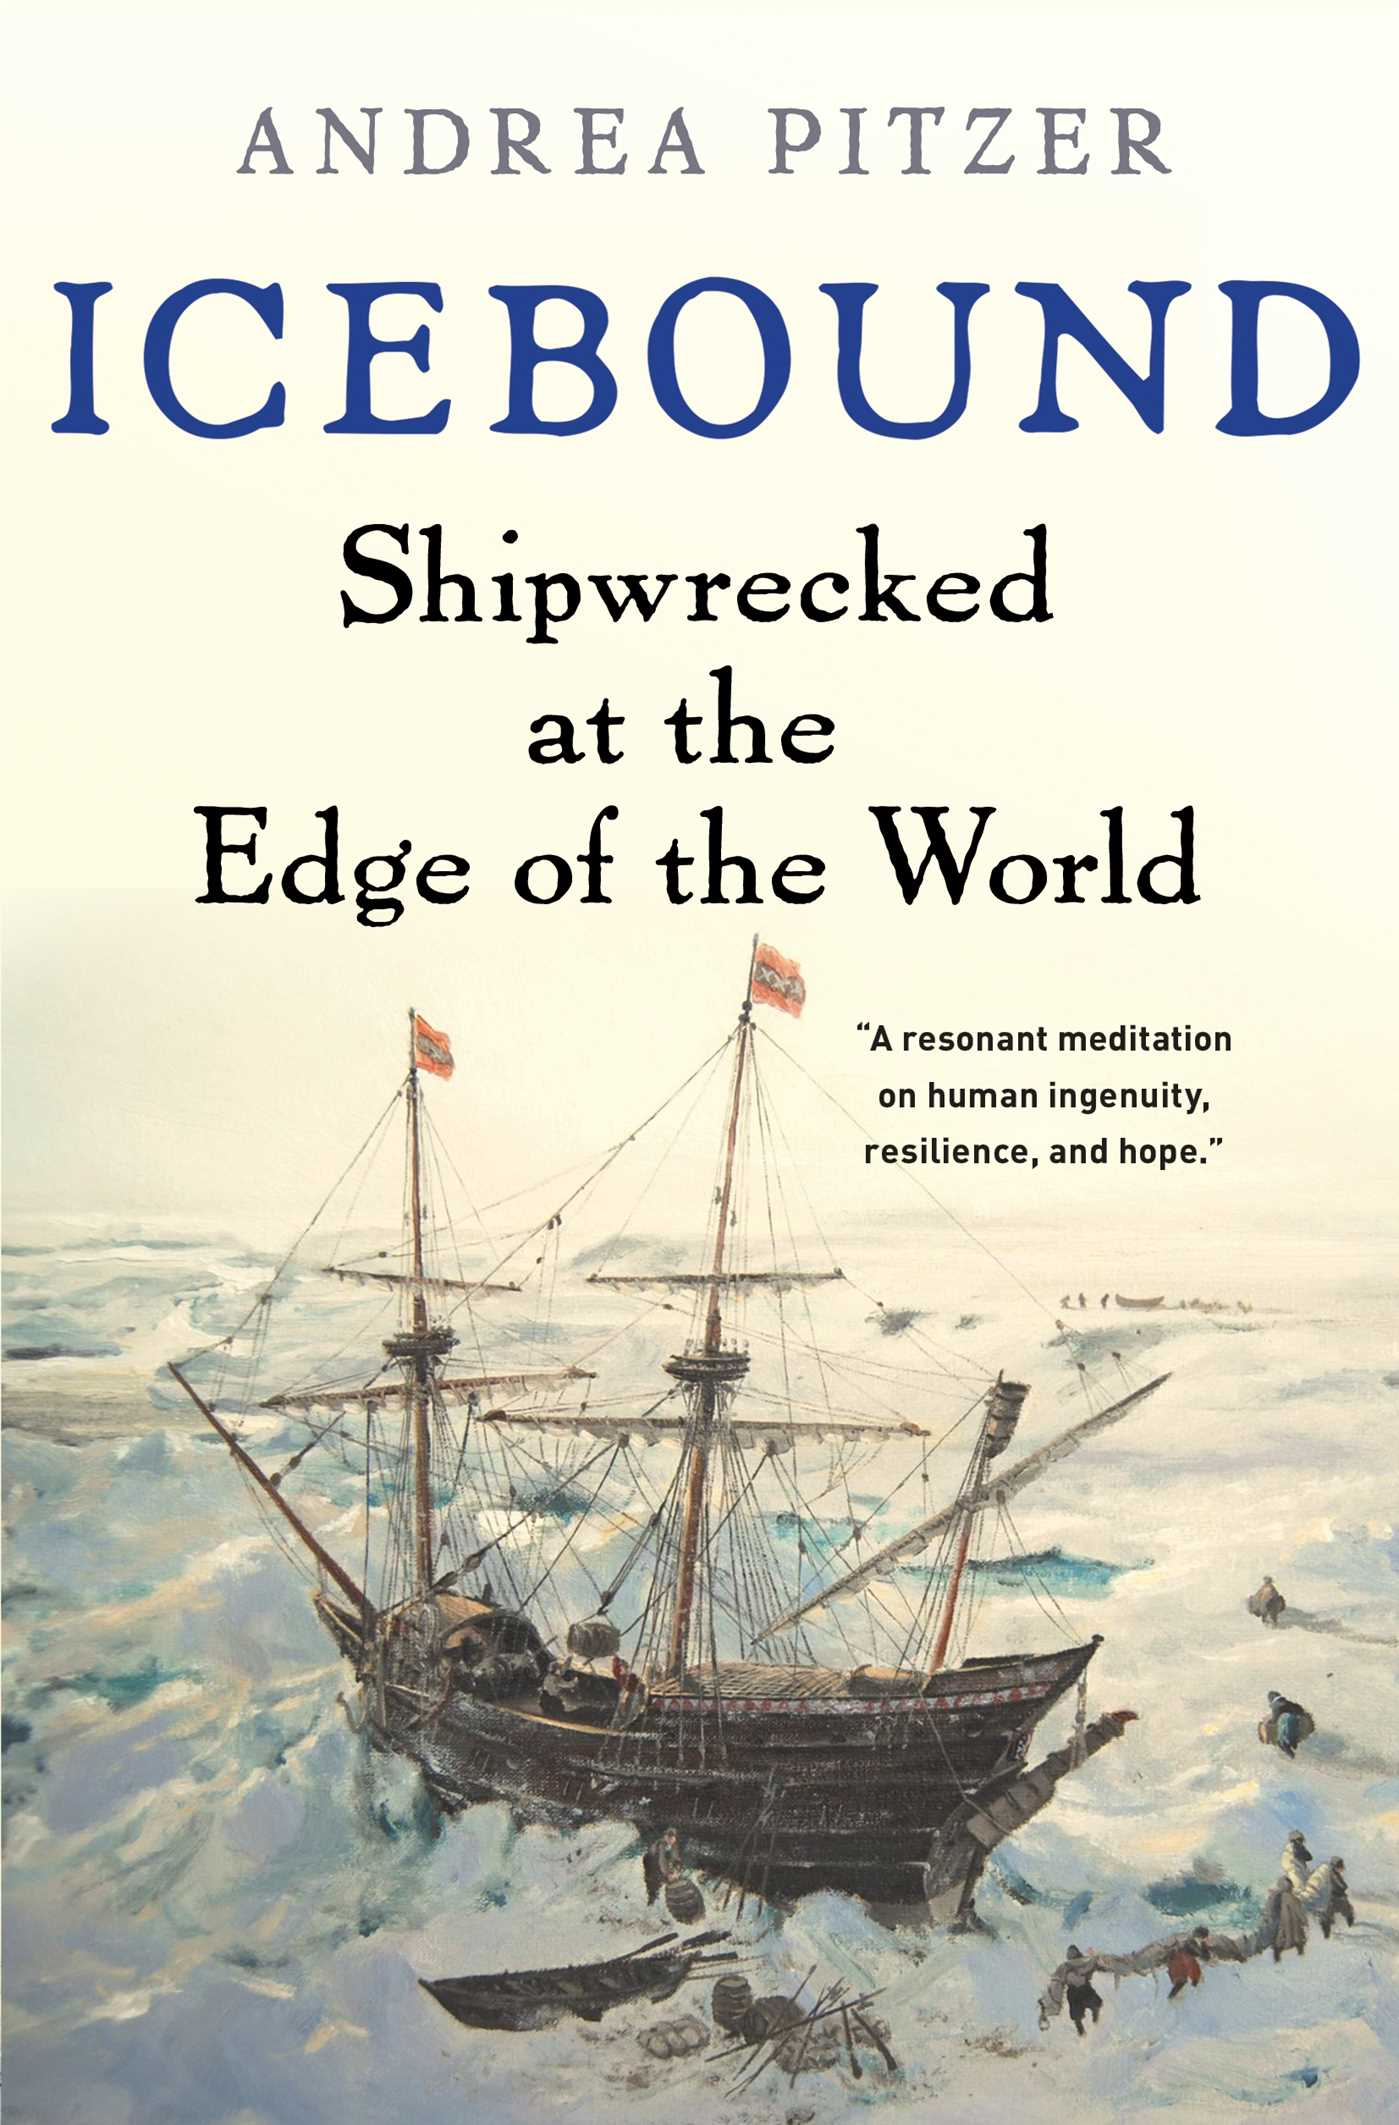 Icebound Shipwrecked at the Edge of the World cover image